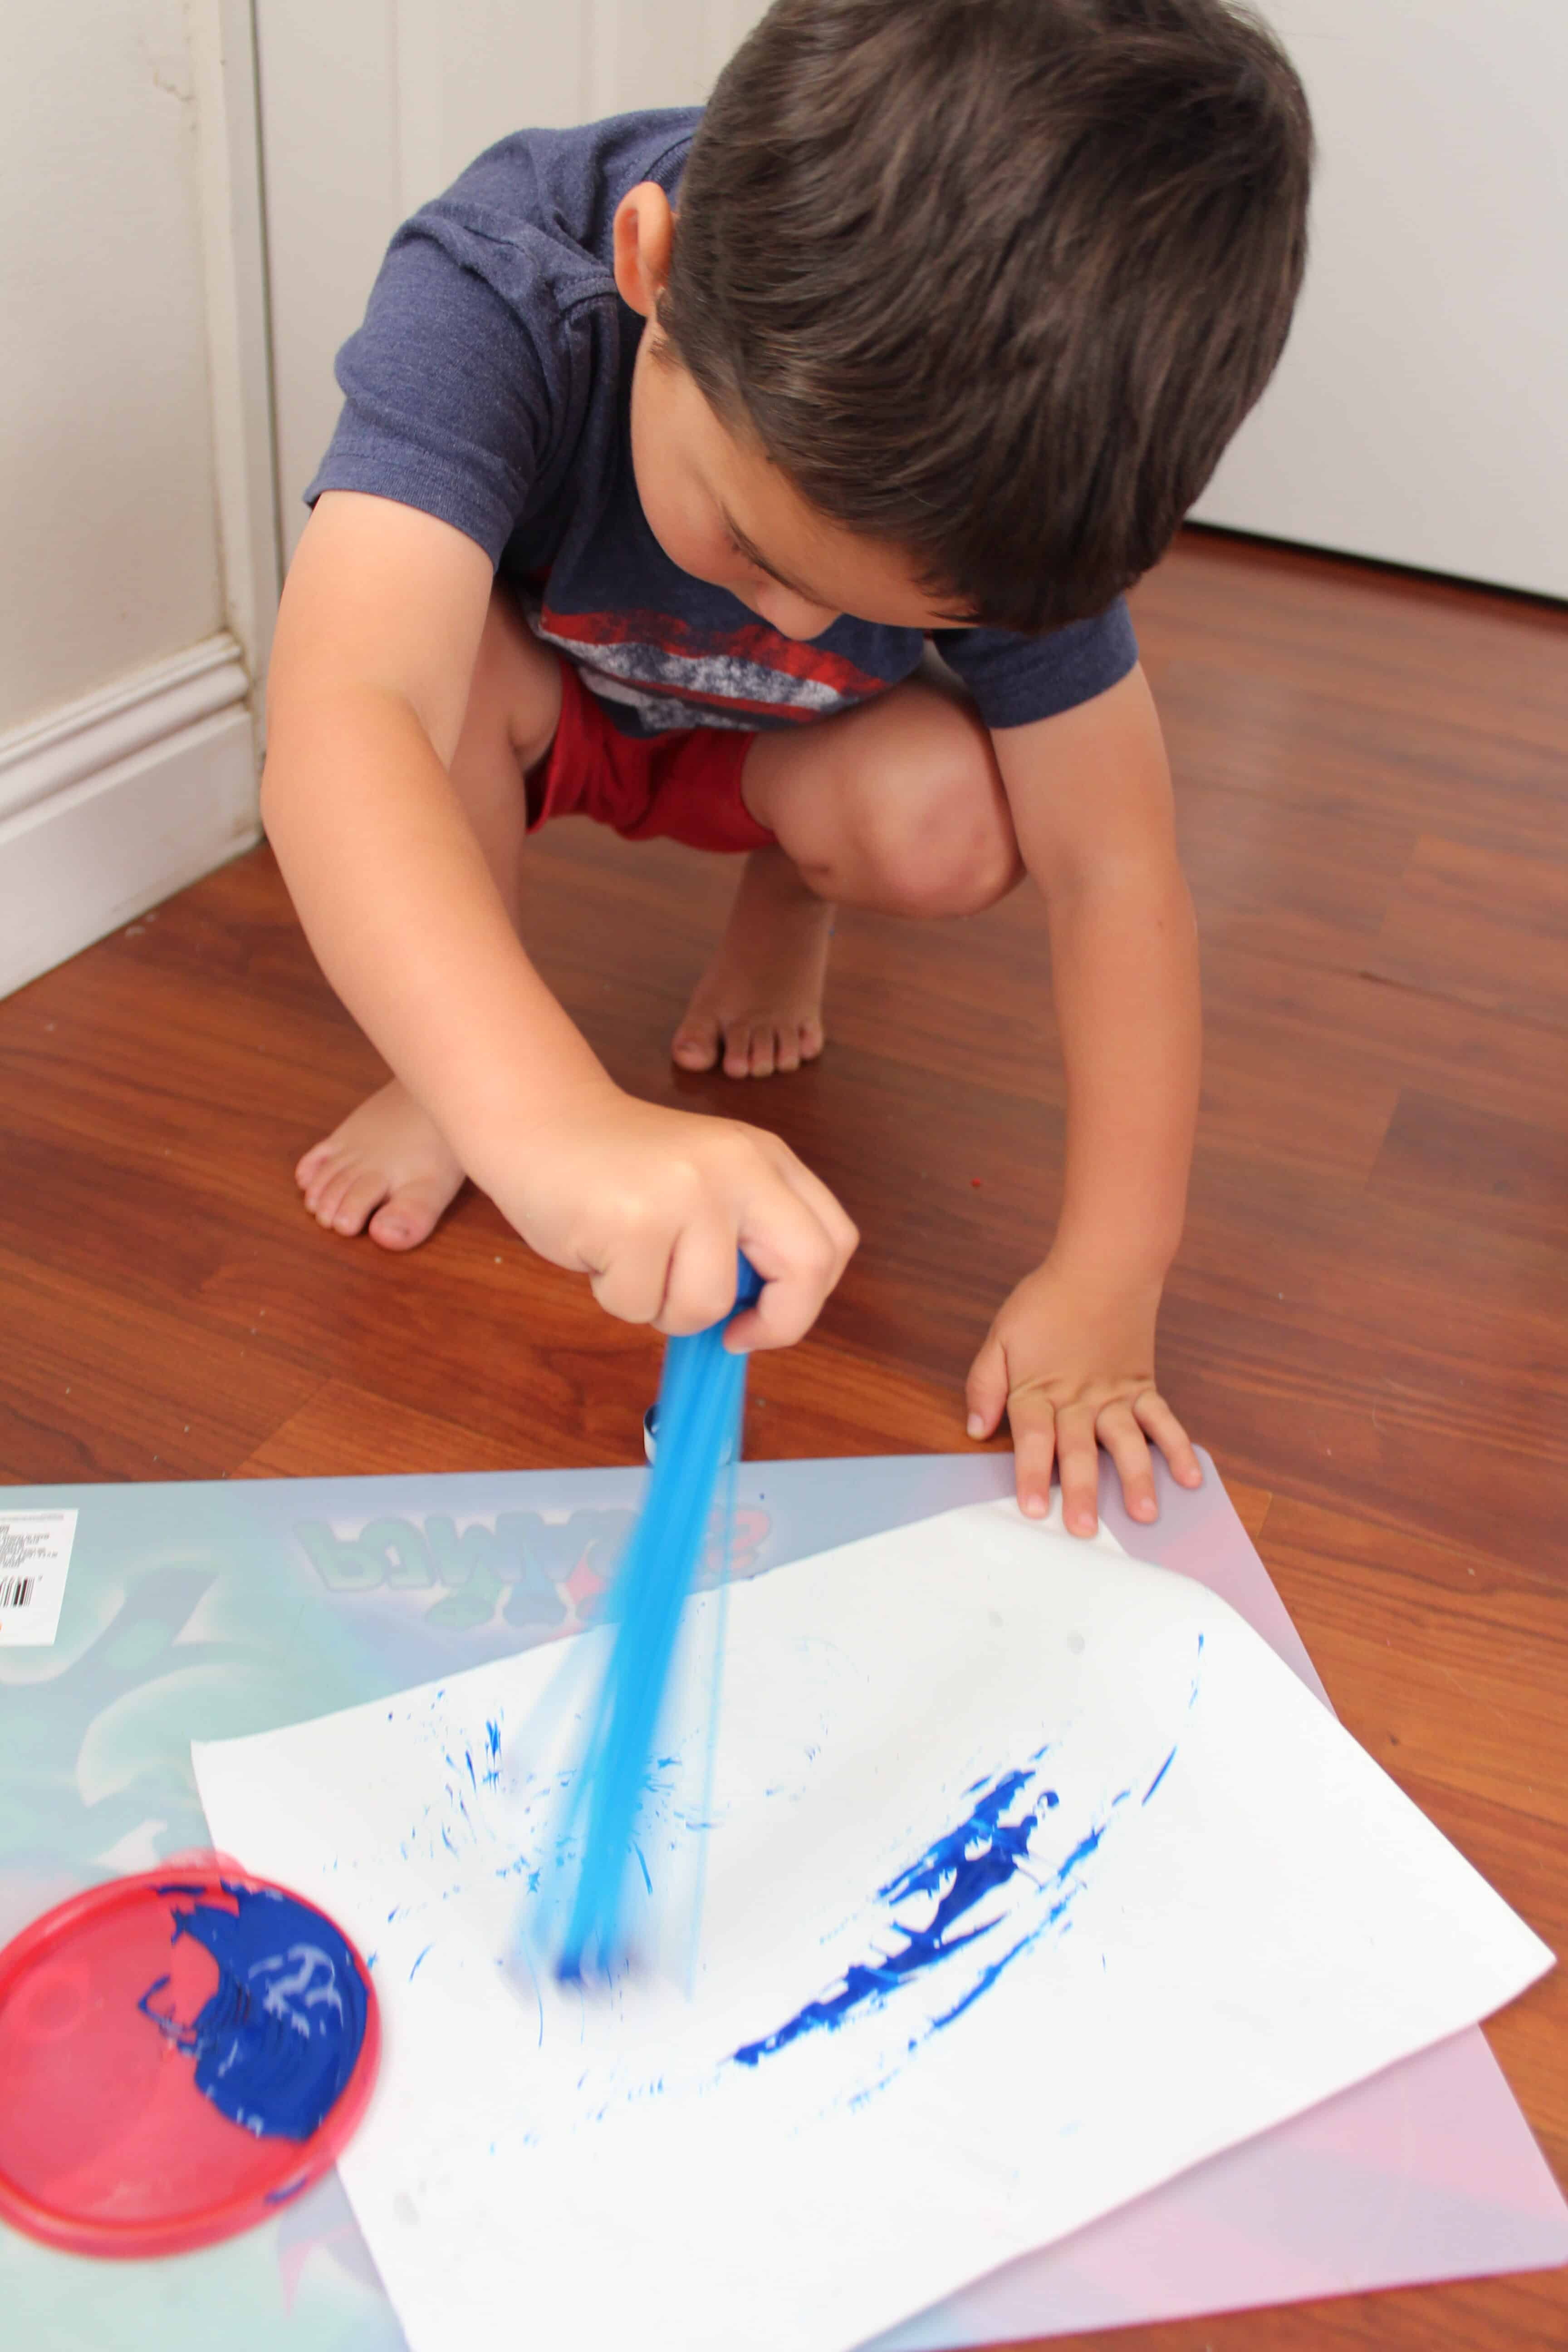 Toddler crouched using the bunch a balloons at the paint brush.